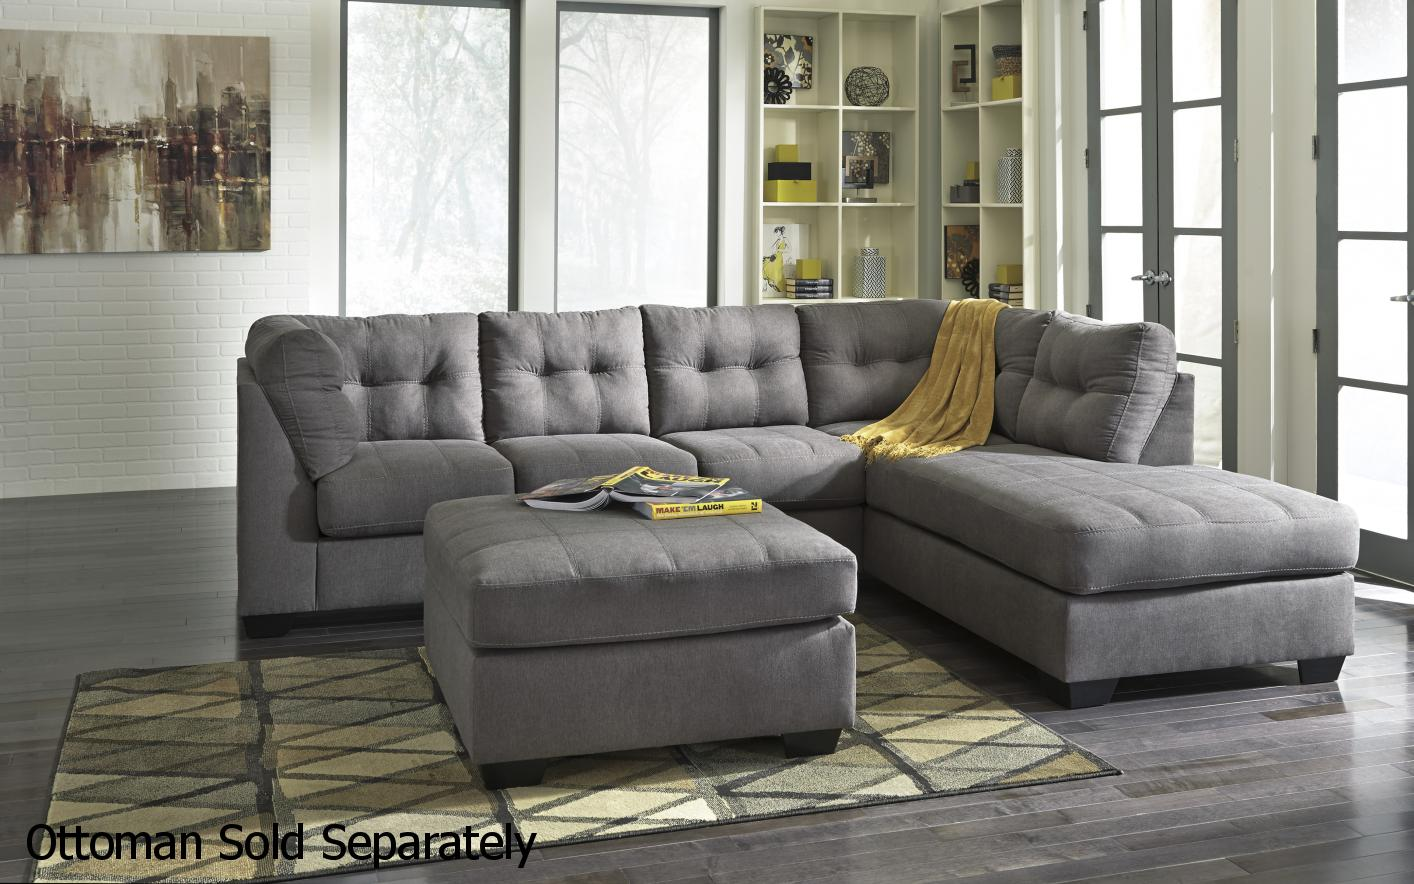 signature kitchen warehouse sale aid appliances ashley 4520017 4520066 grey fabric sectional sofa - steal ...